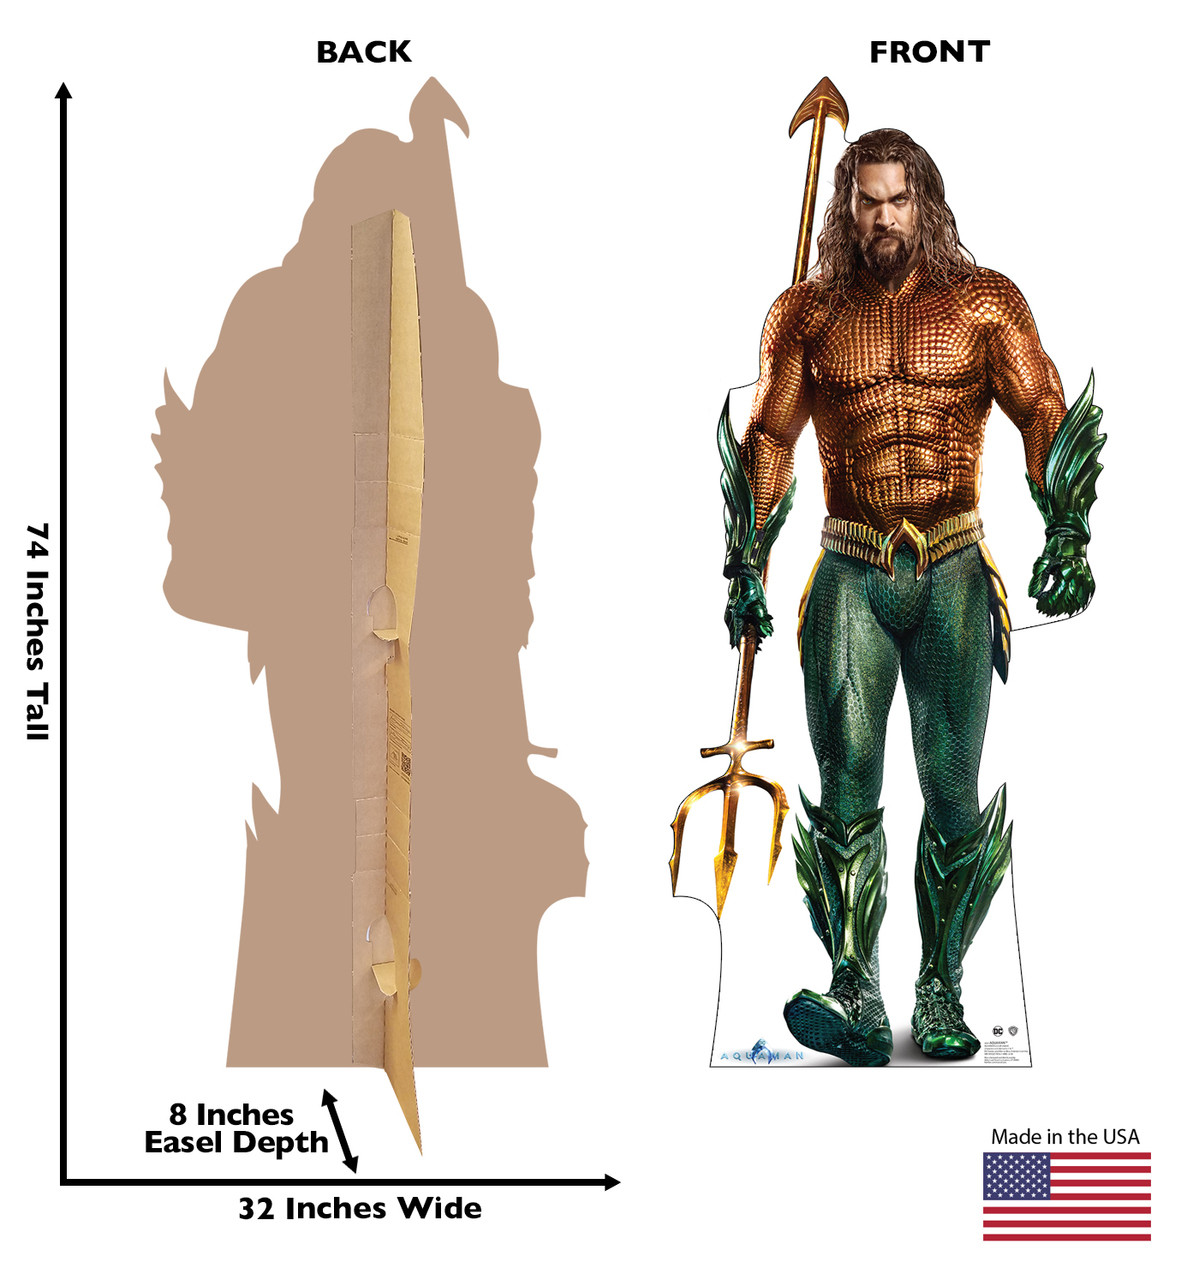 Life-size cardboard standee of the super hero Aquaman. Front and back with dimensions.